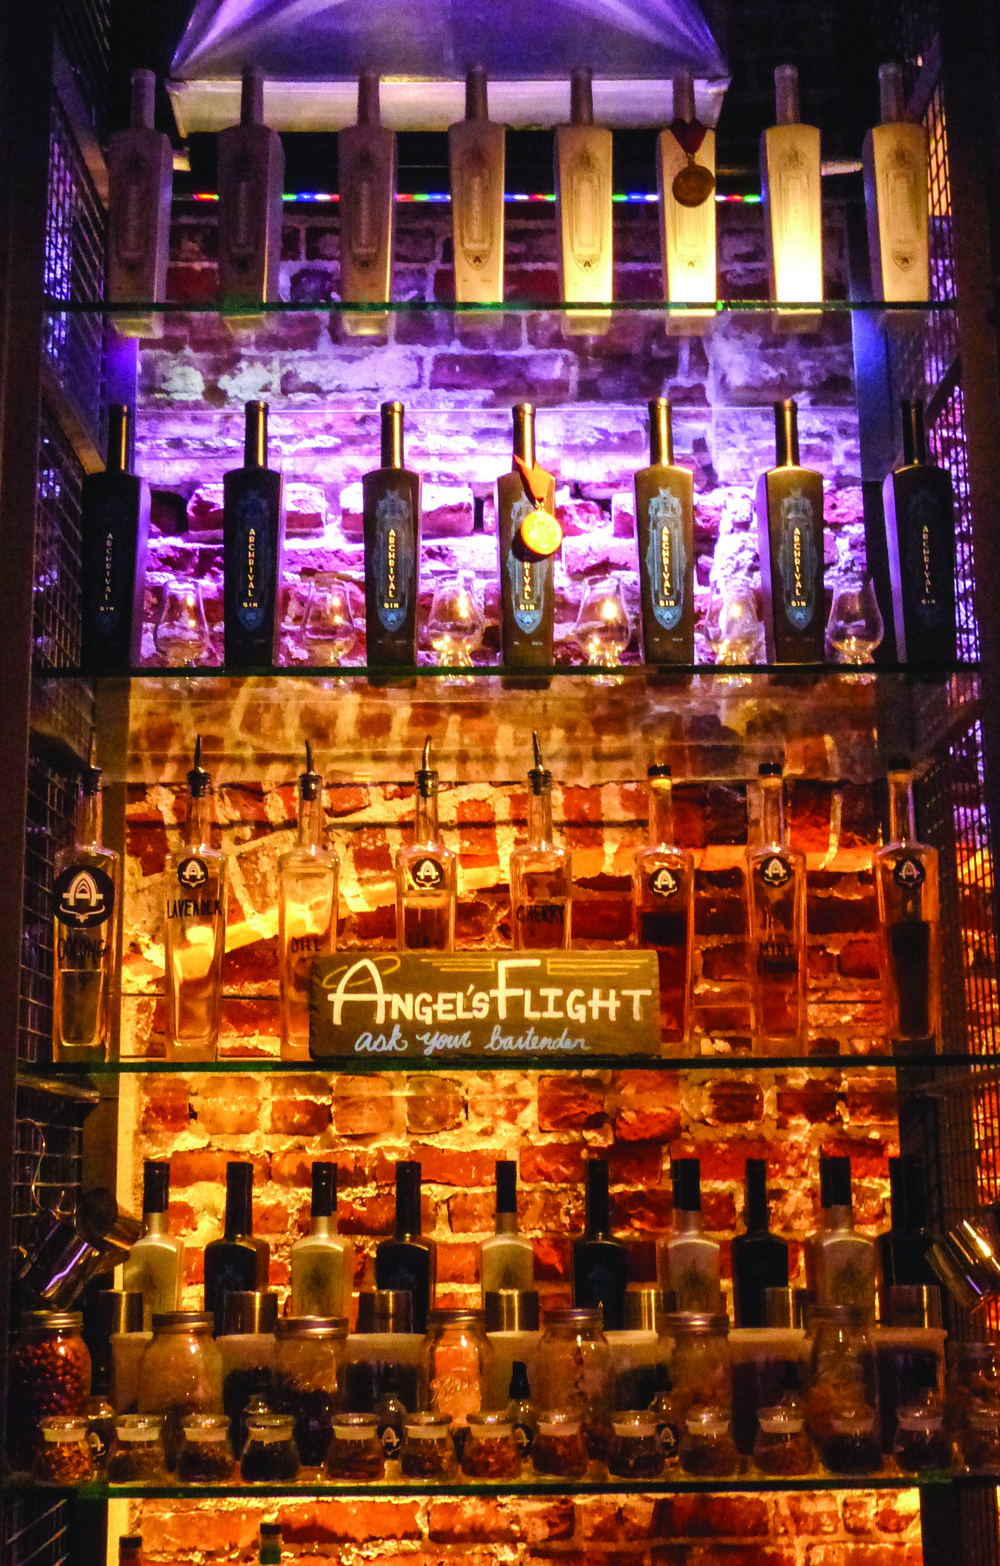 Archetype visitors can sample a variety of spirits from the Angel's Flight.